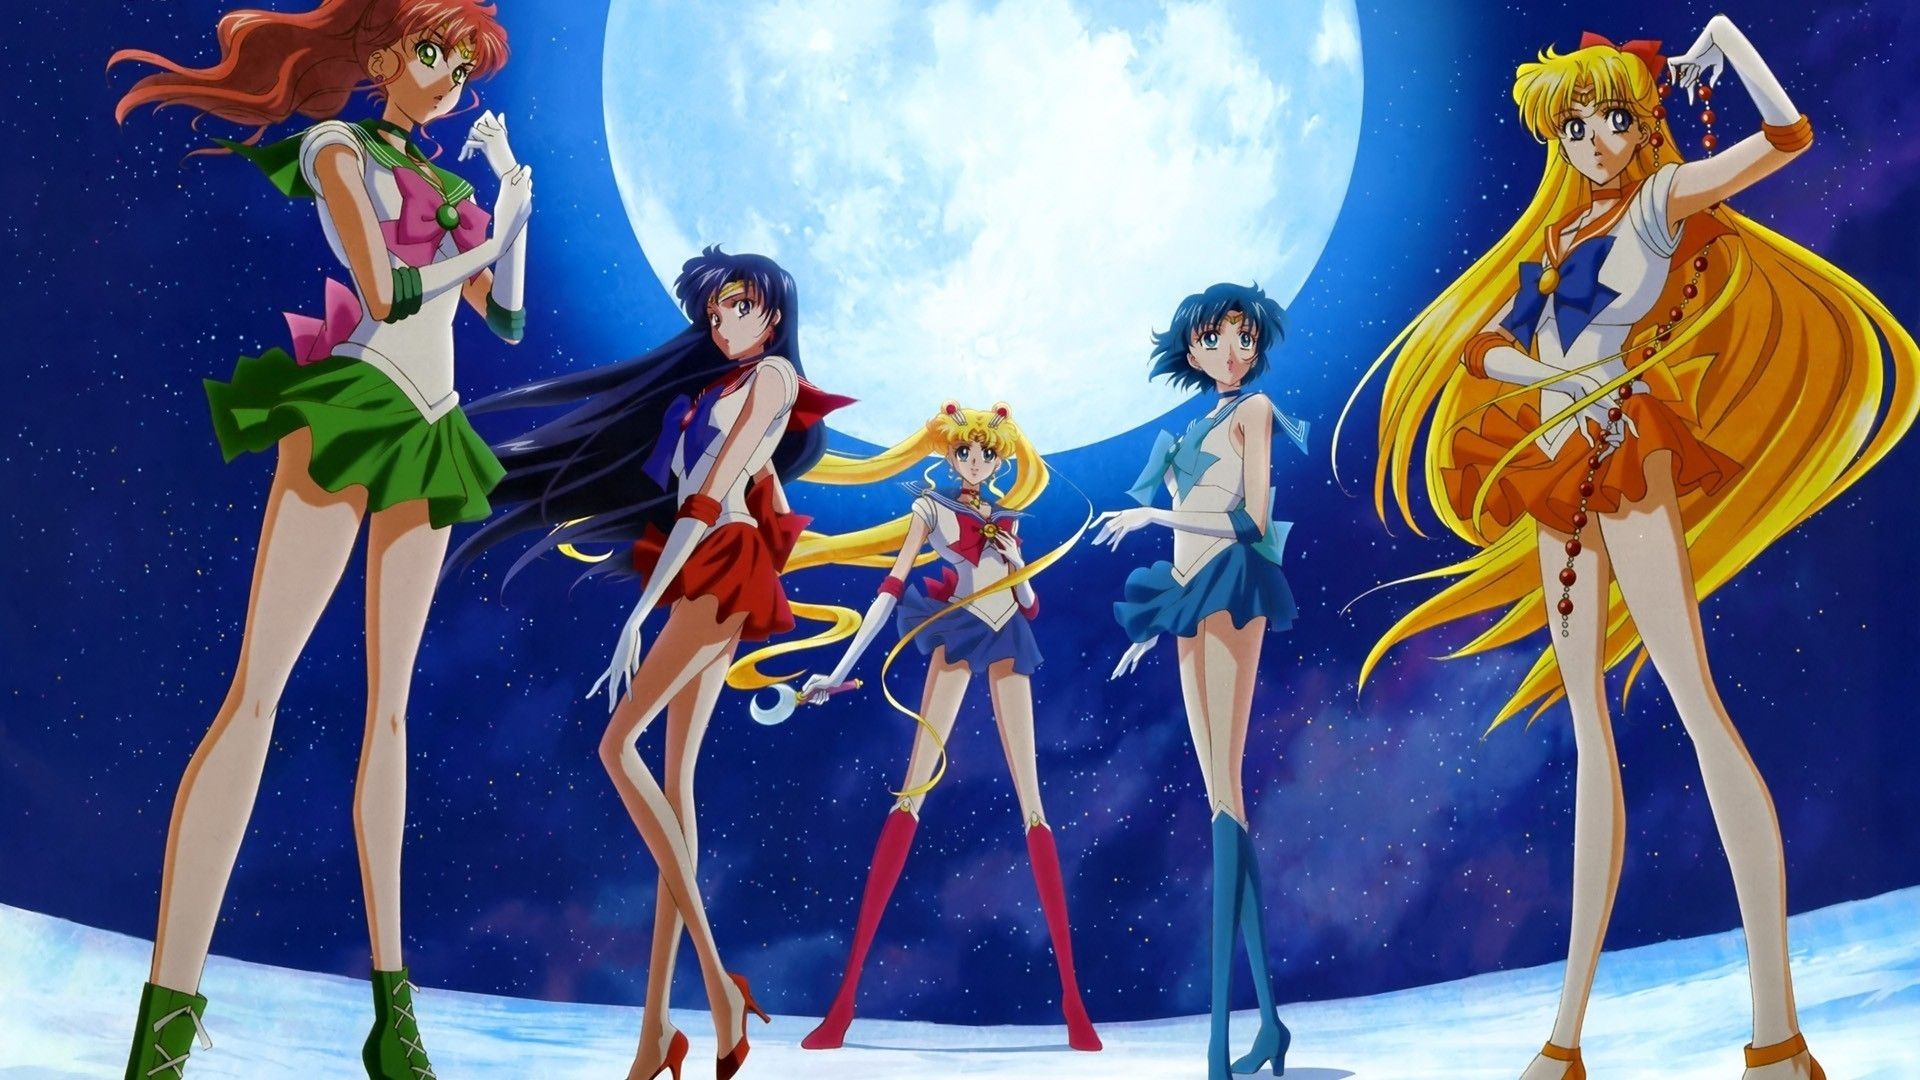 sailor moon crystal - sailor moon crystal wallpaper (1920x1080